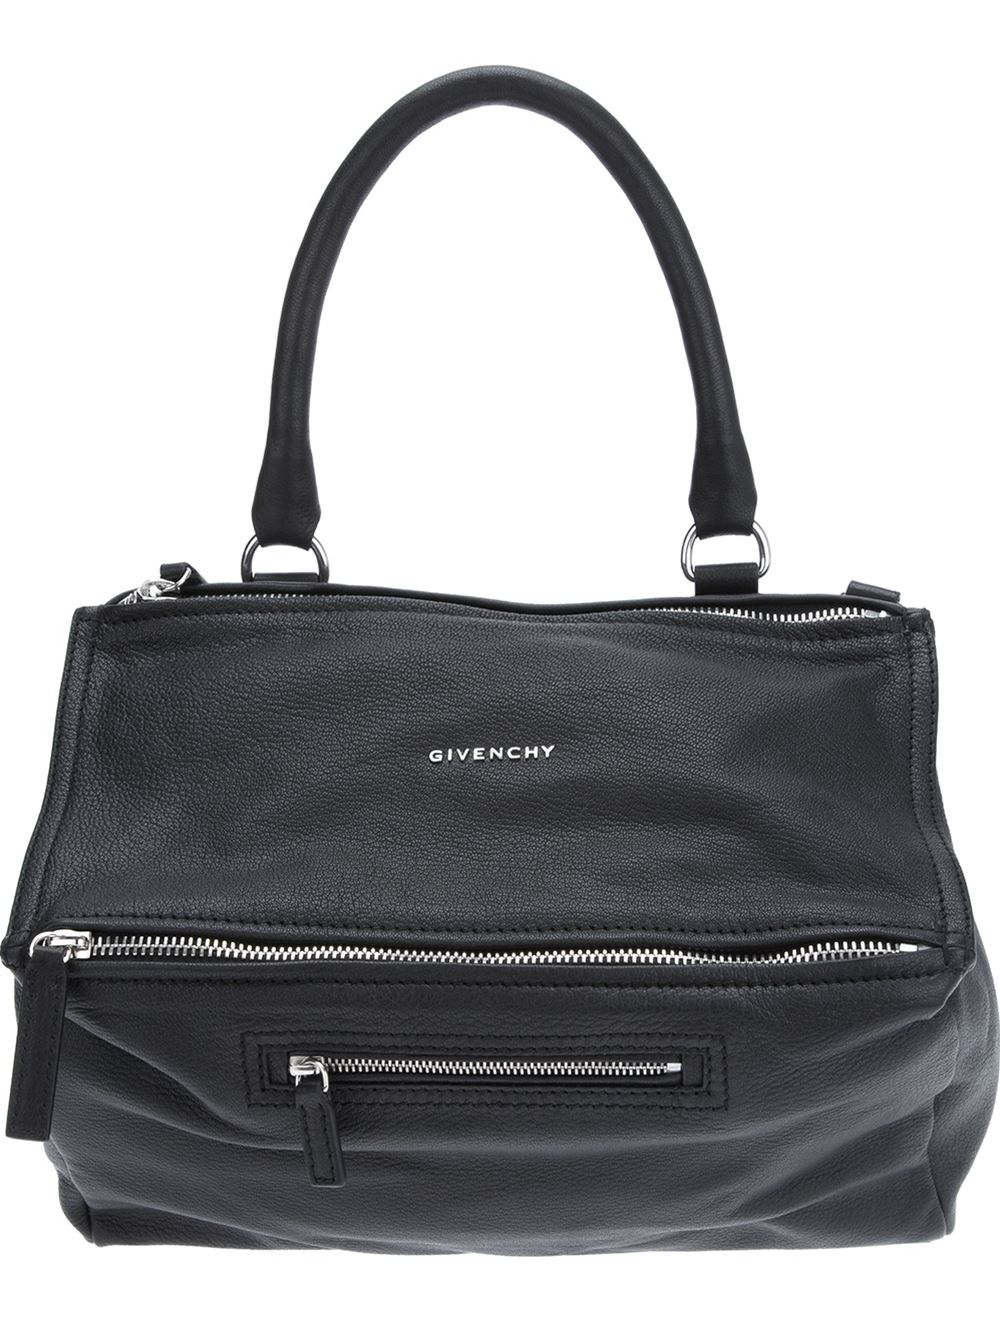 Givenchy Medium 'pandora' Shoulder Bag - - Farfetch.com